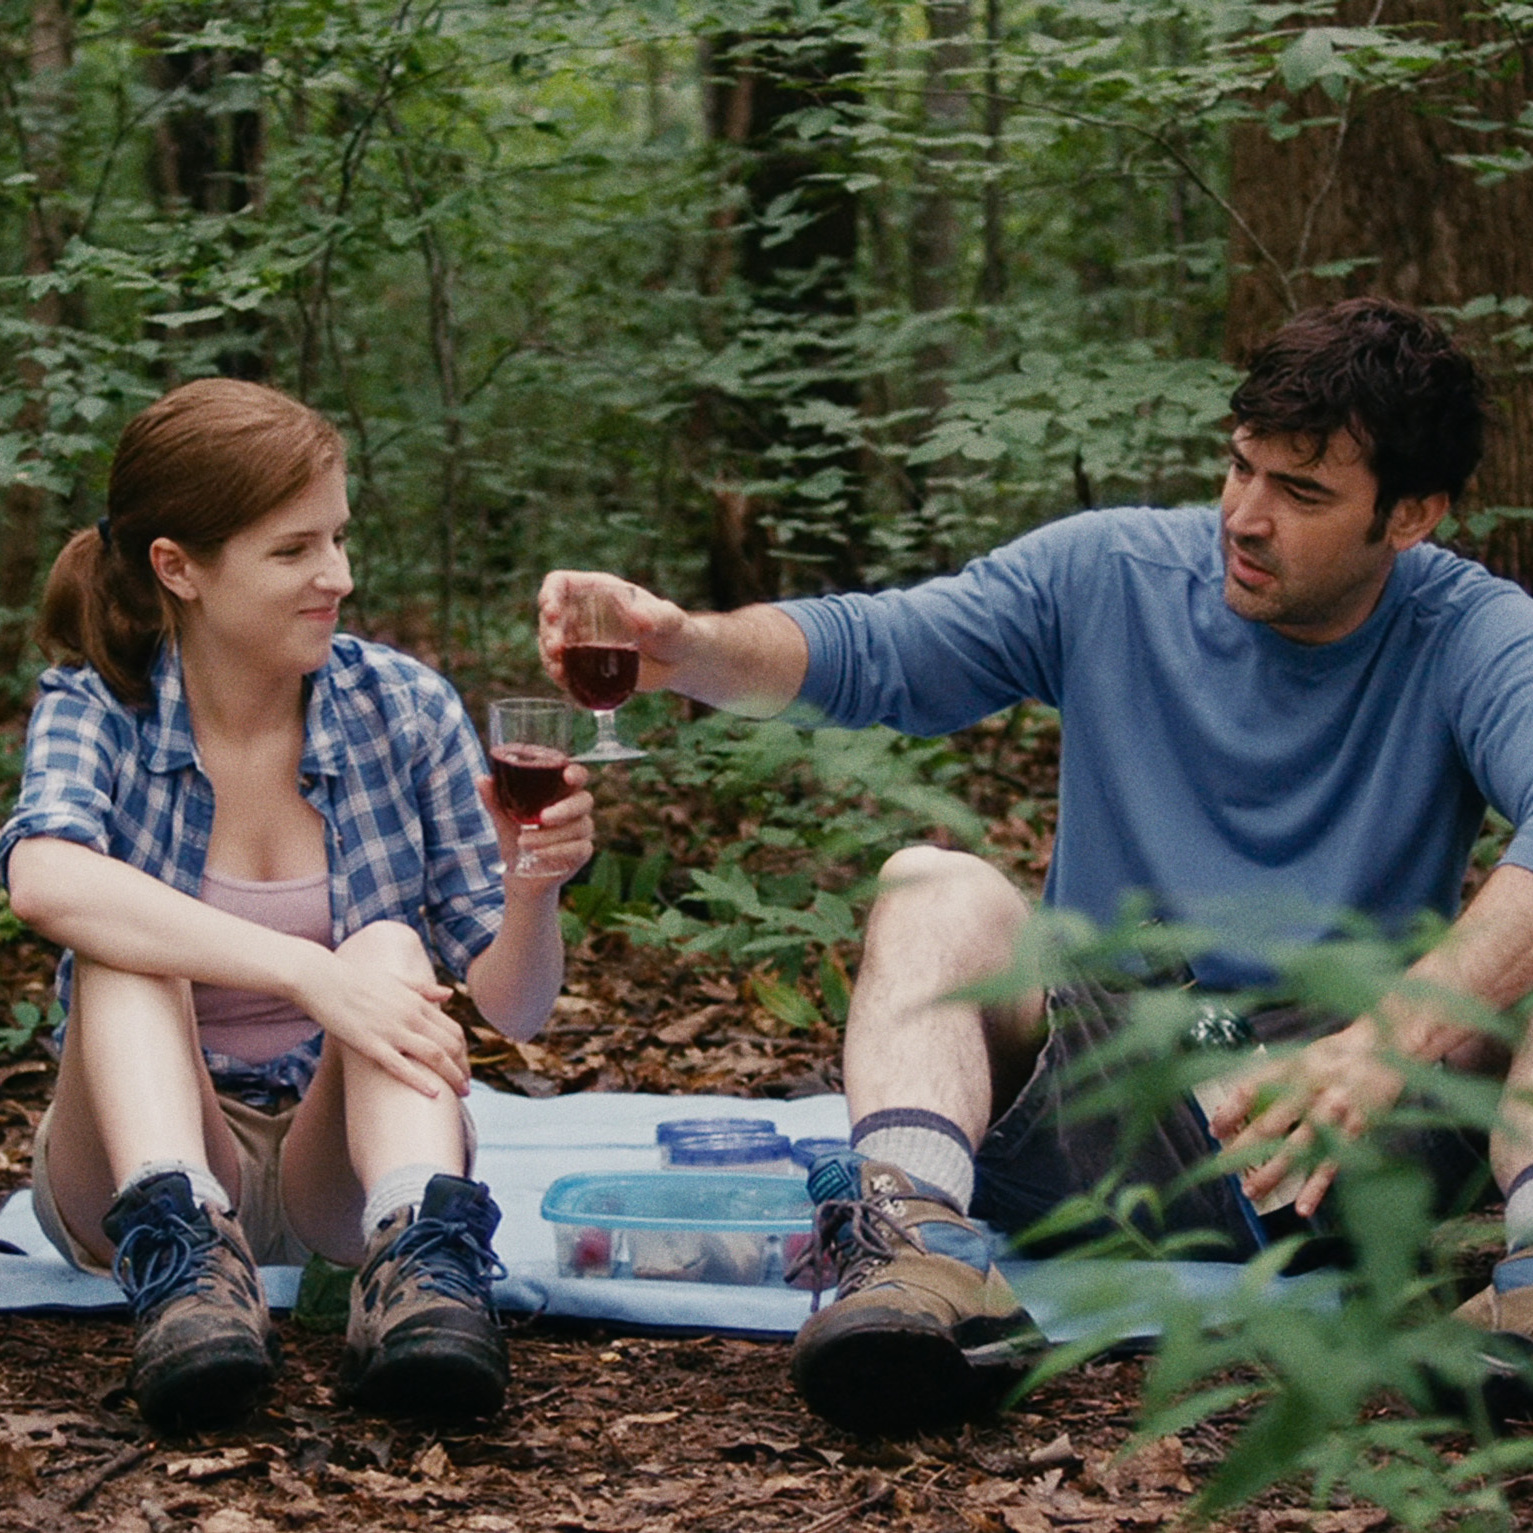 Luke and Kate's significant others -- Jill (Anna Kendrick) and Chris (Ron Livingston), respectively -- have a flirtation of their own.